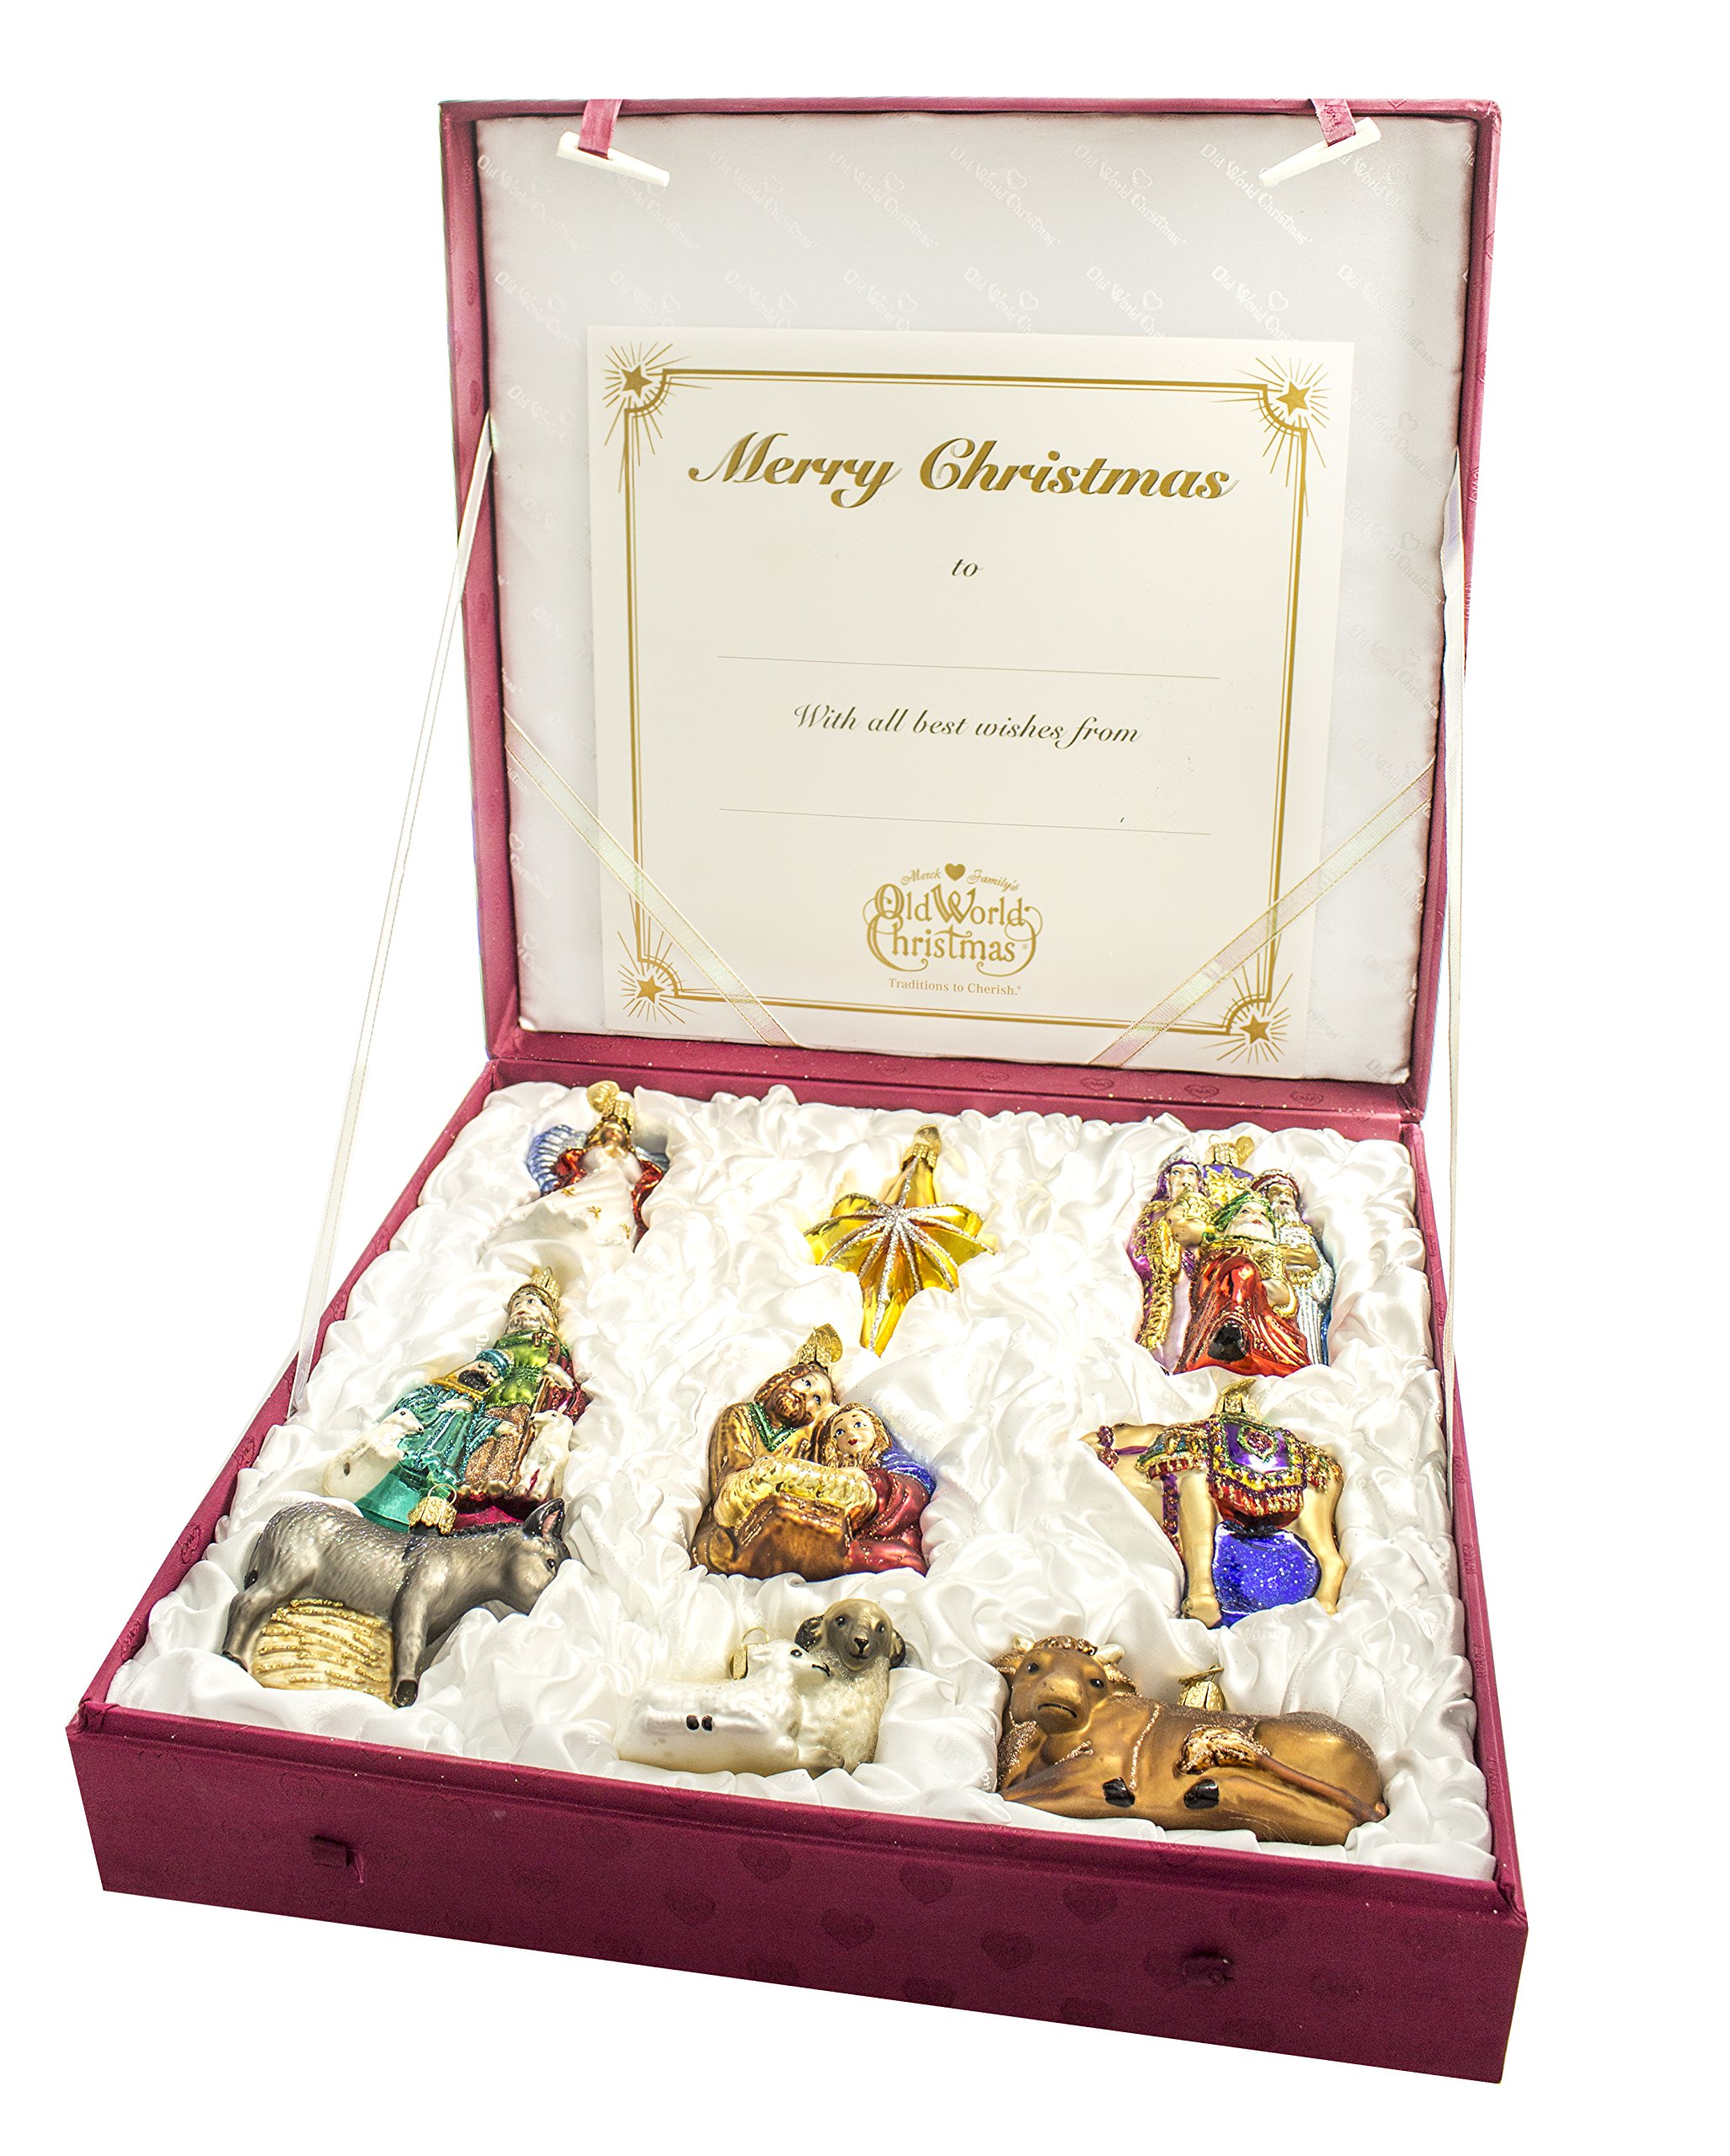 Old World Christmas Nativity Collection Glass Ornaments Set of 9 14020 by Old World Christmas